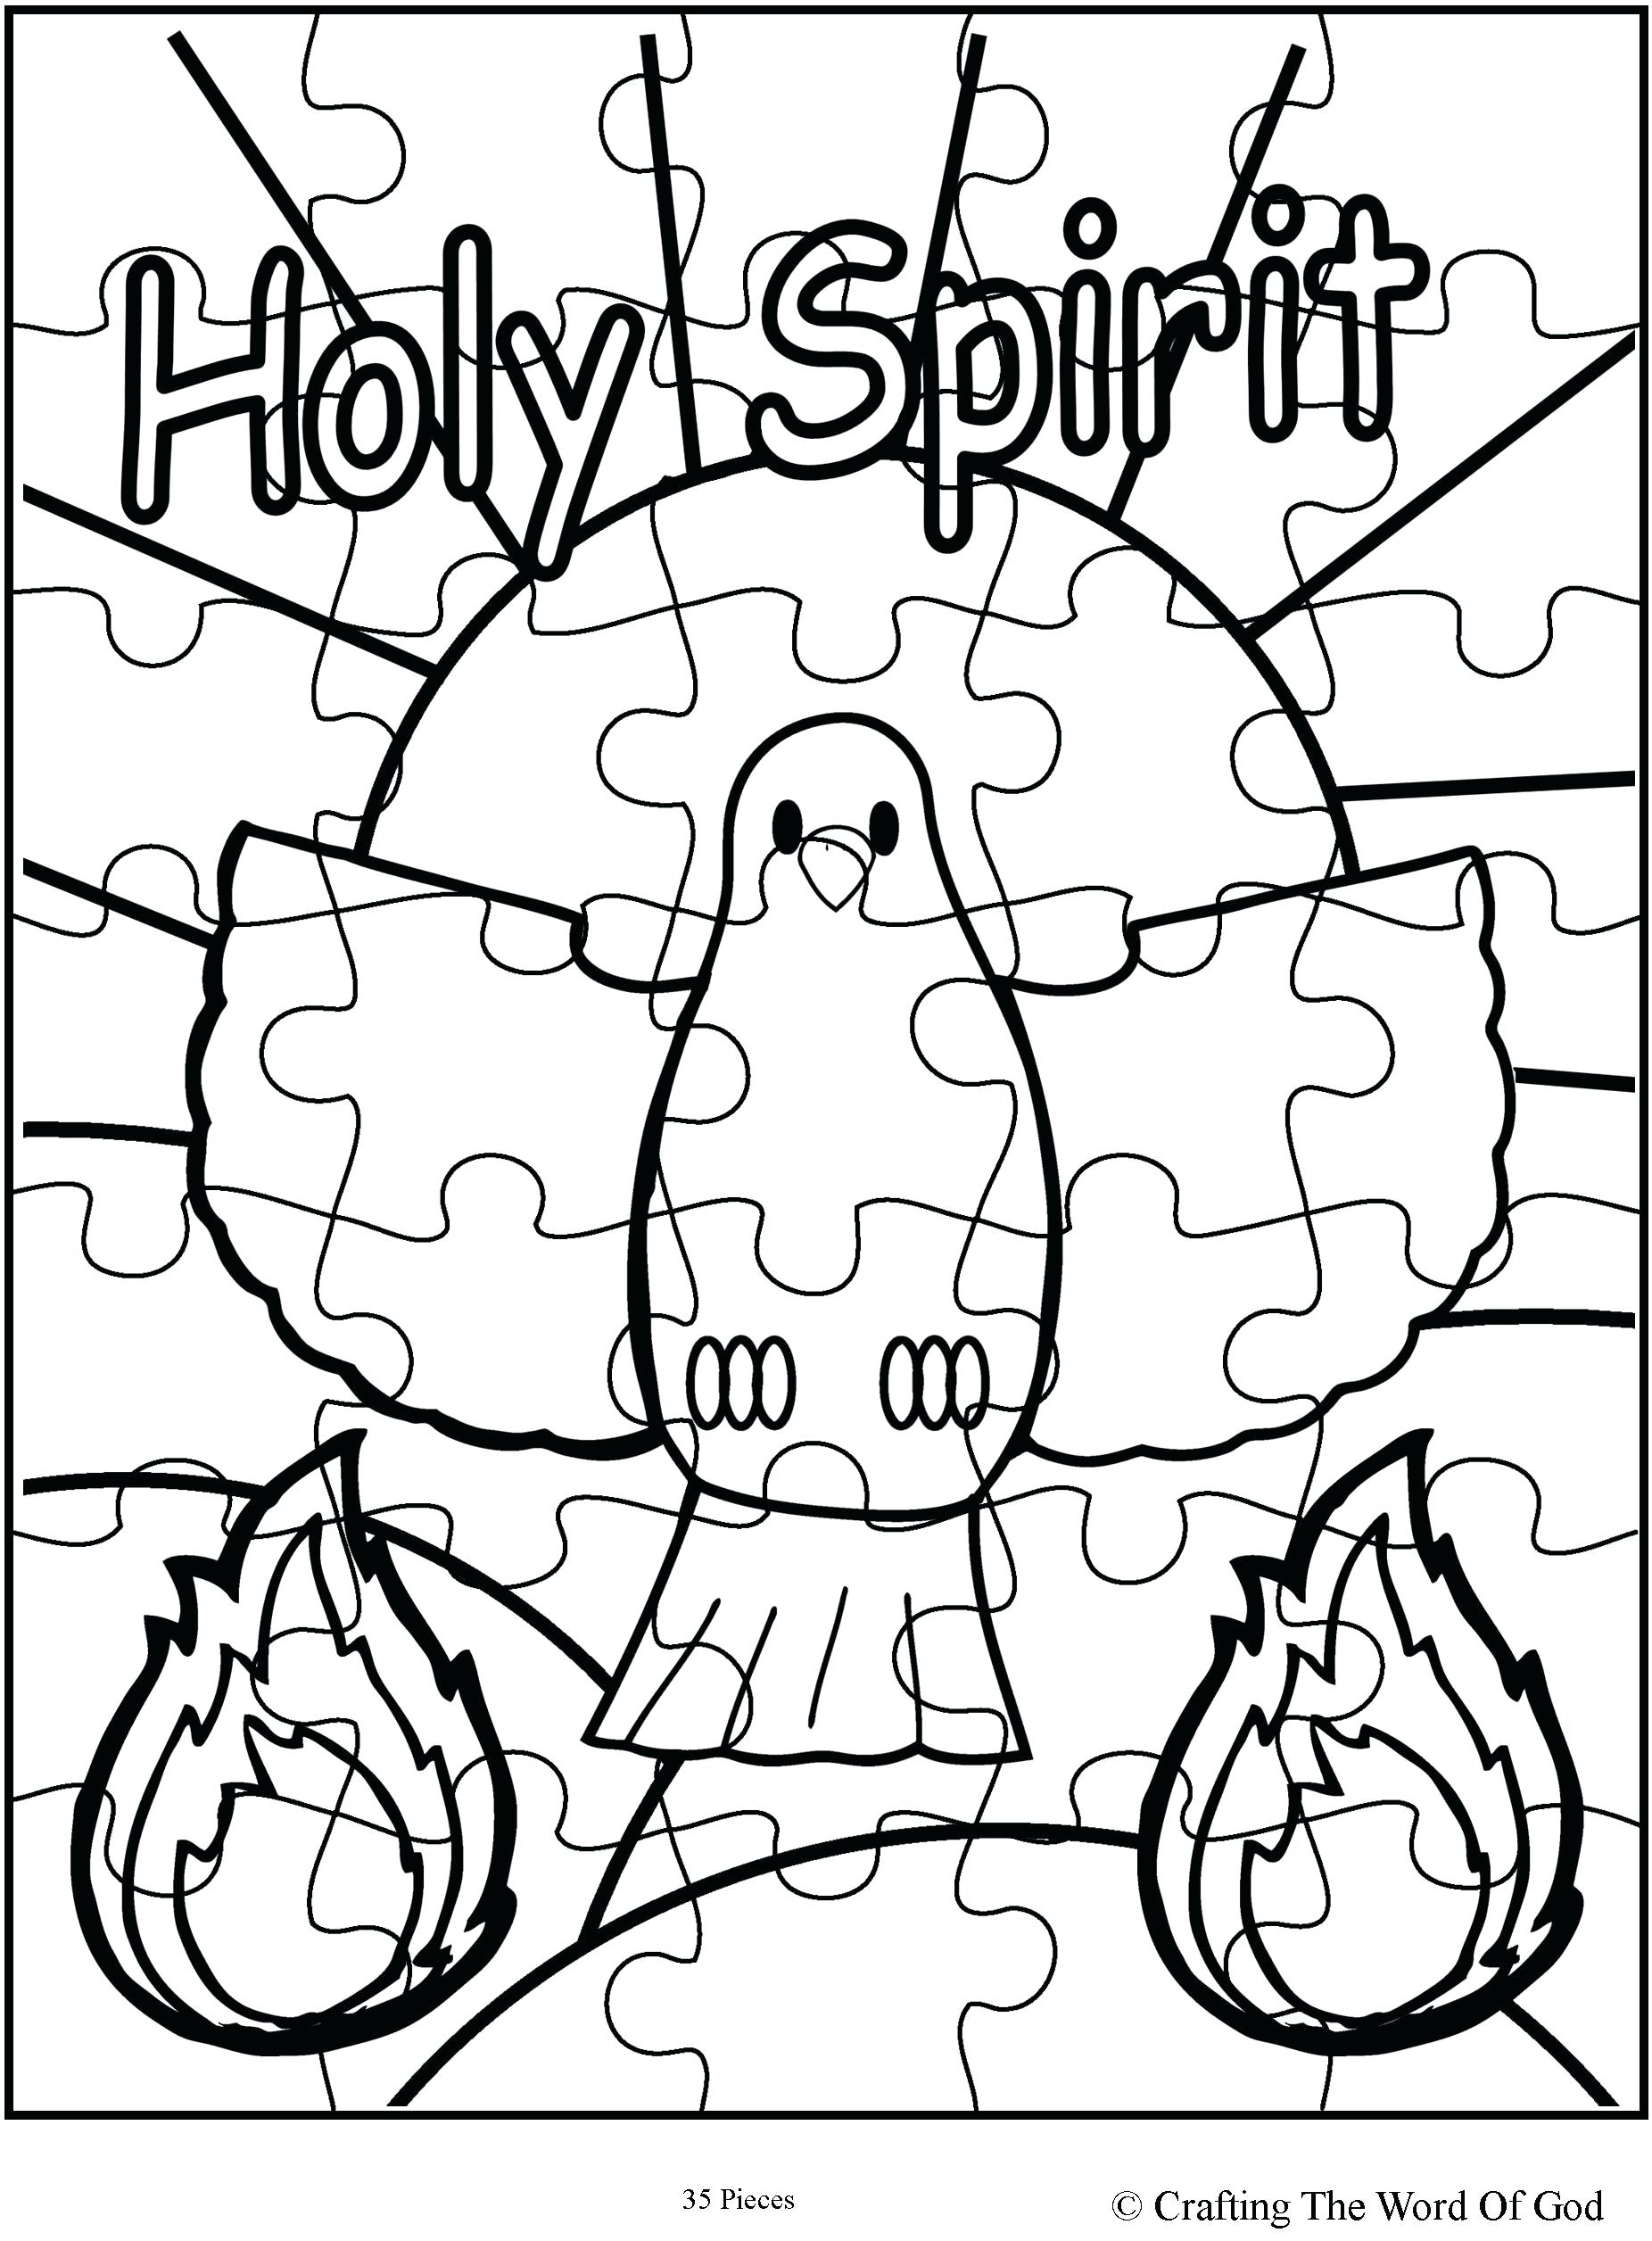 Puzzle Piece Coloring Page At Getcolorings